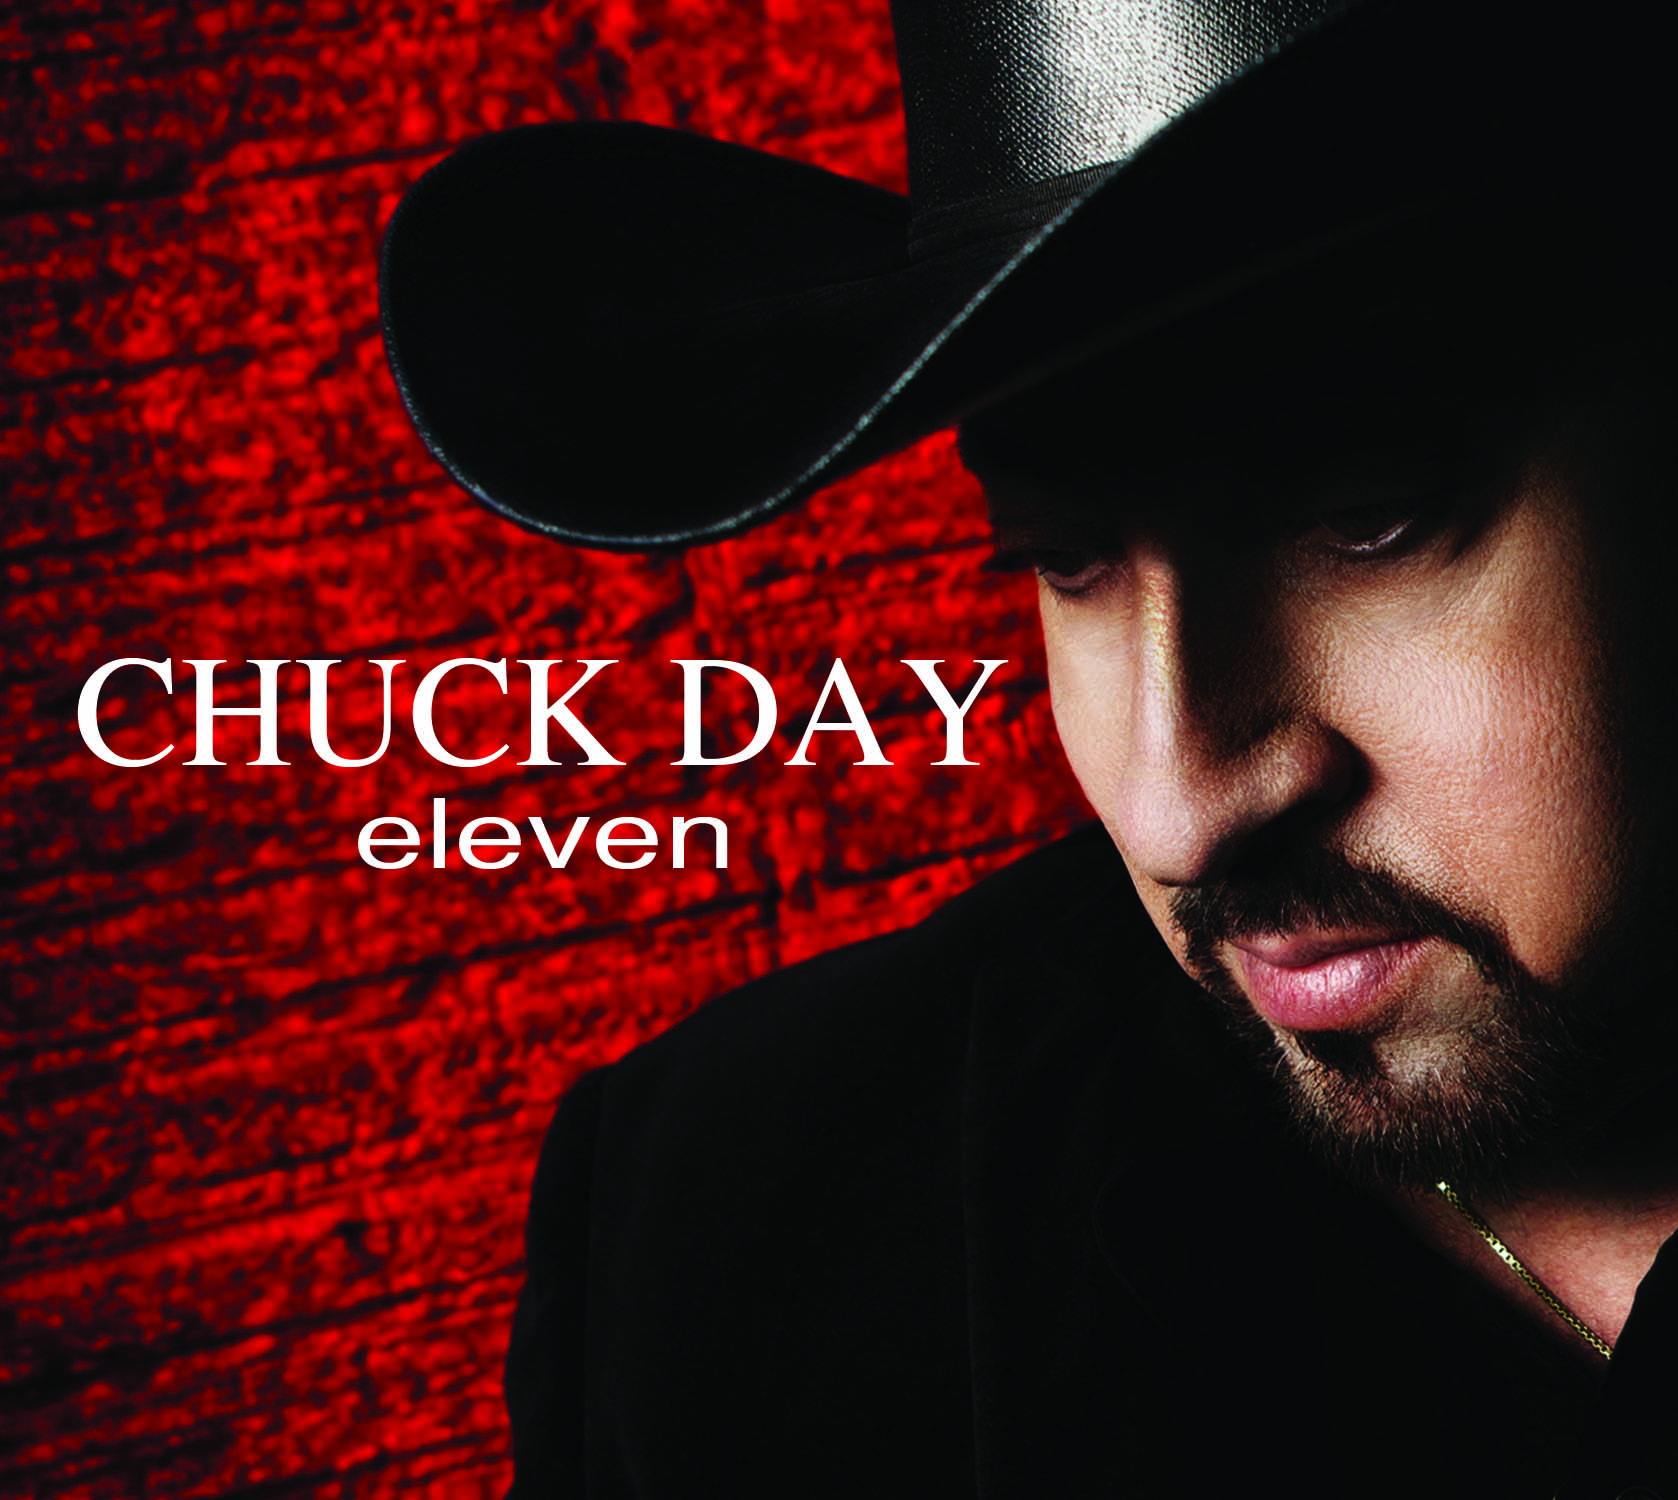 Award Winning Artist Chuck Day's Newest CD eleven featuring title track I'll Stand Up and Say So